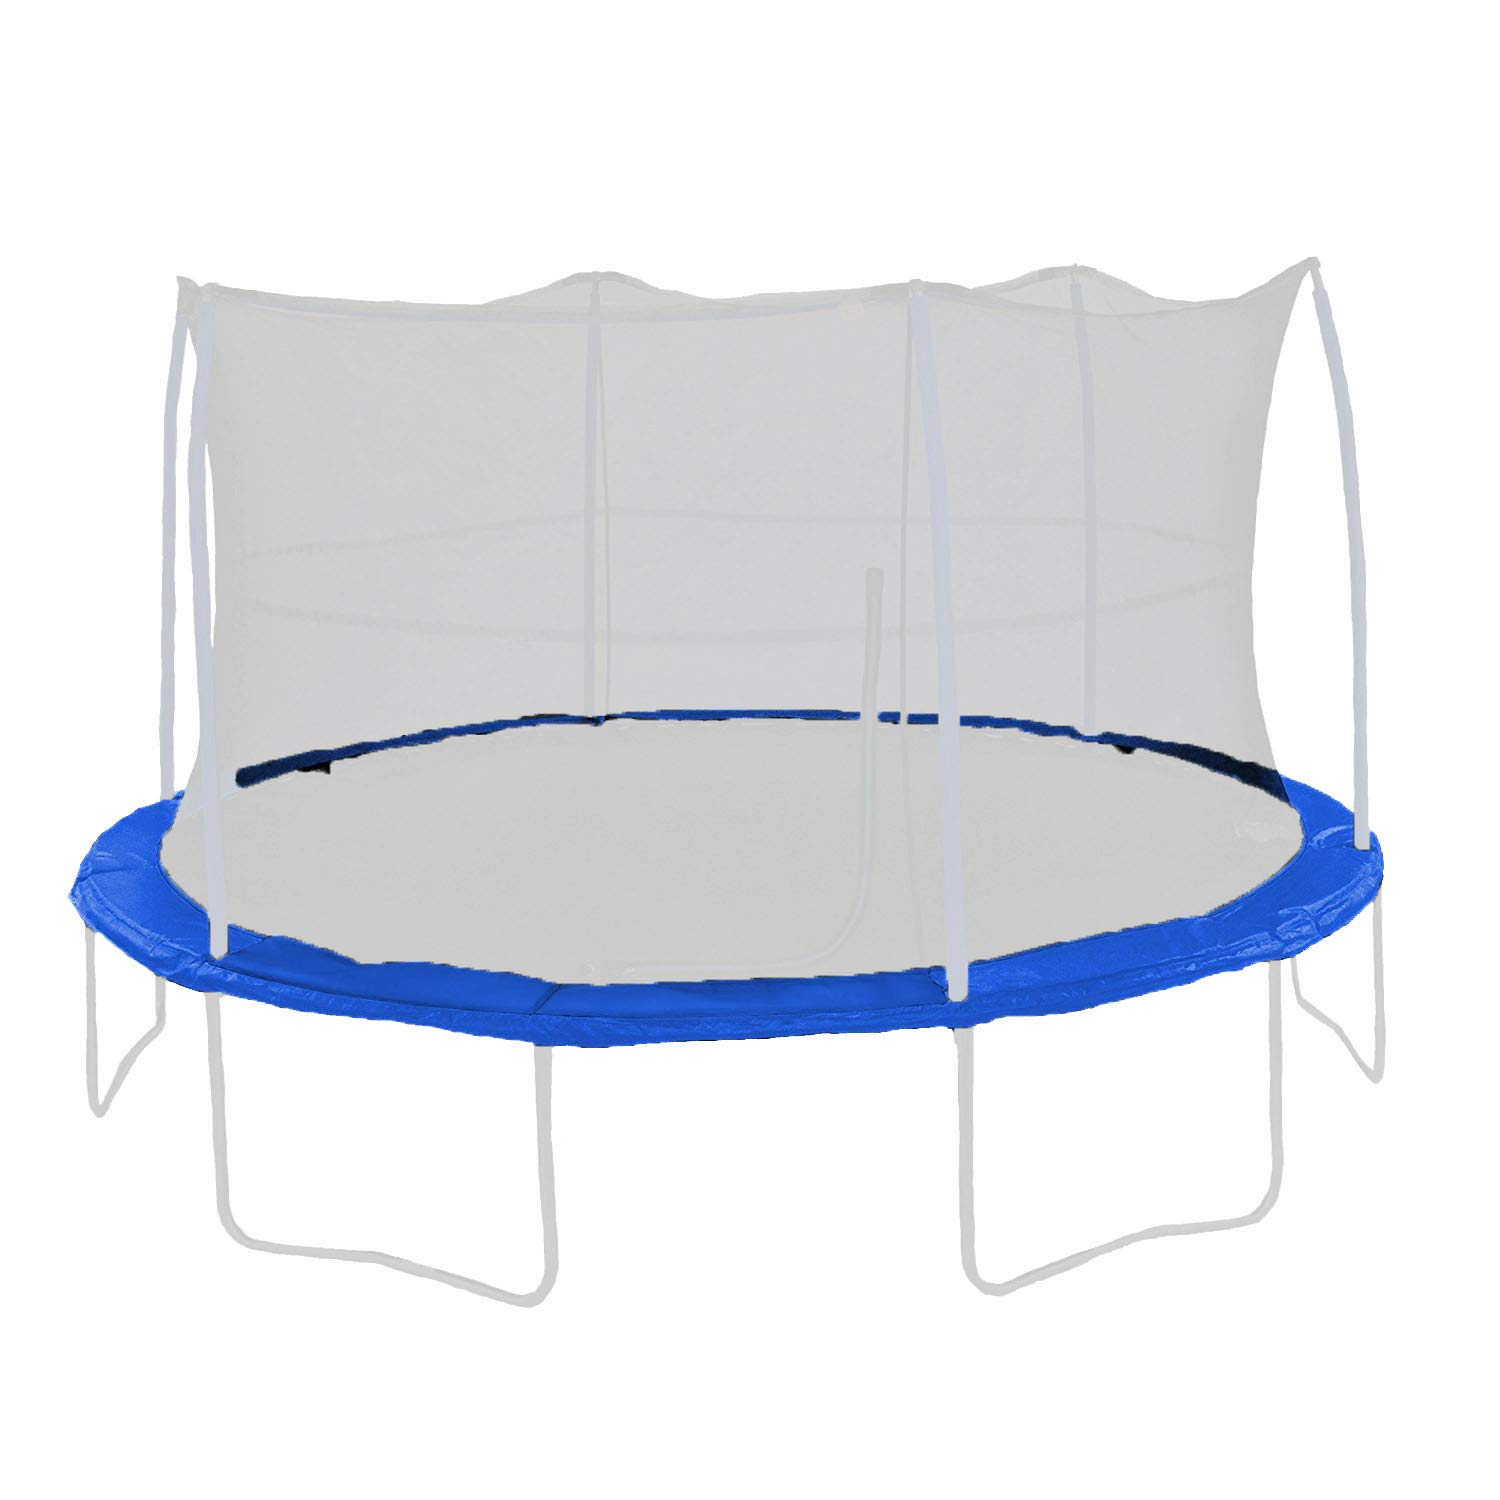 Jumpking 15' Safety Pad for 5.5 and 7-Inch Springs (Trampoline not Included) by JumpKing